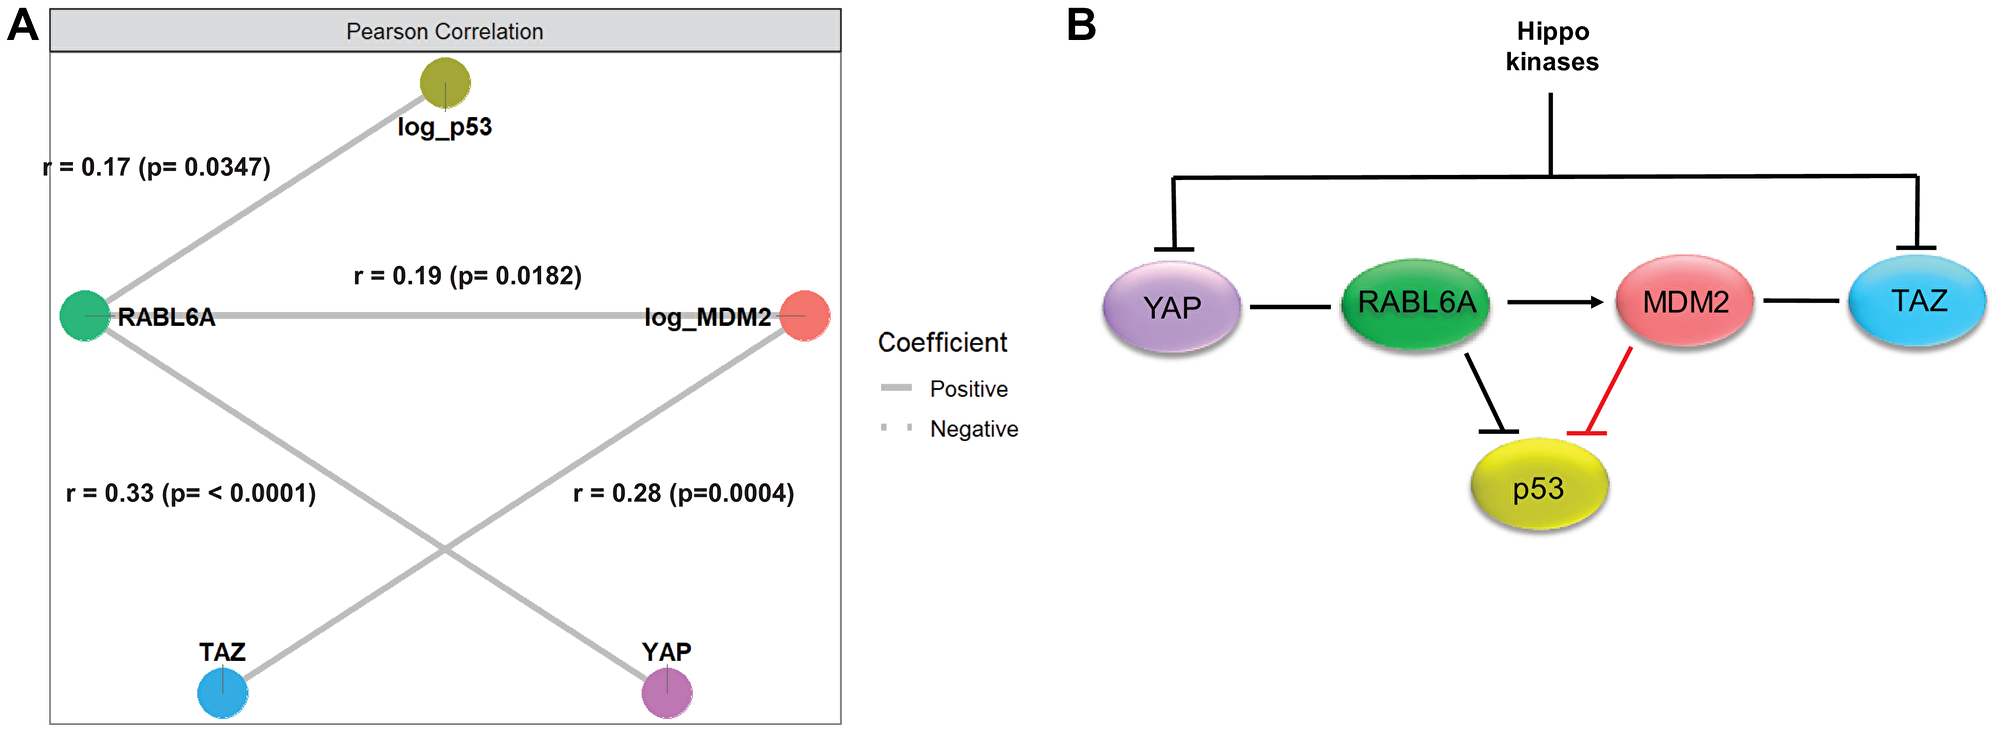 Network analysis supported a model integrating the Hippo pathway, p53/MDM2 axis and RABL6A signaling in sarcomas.